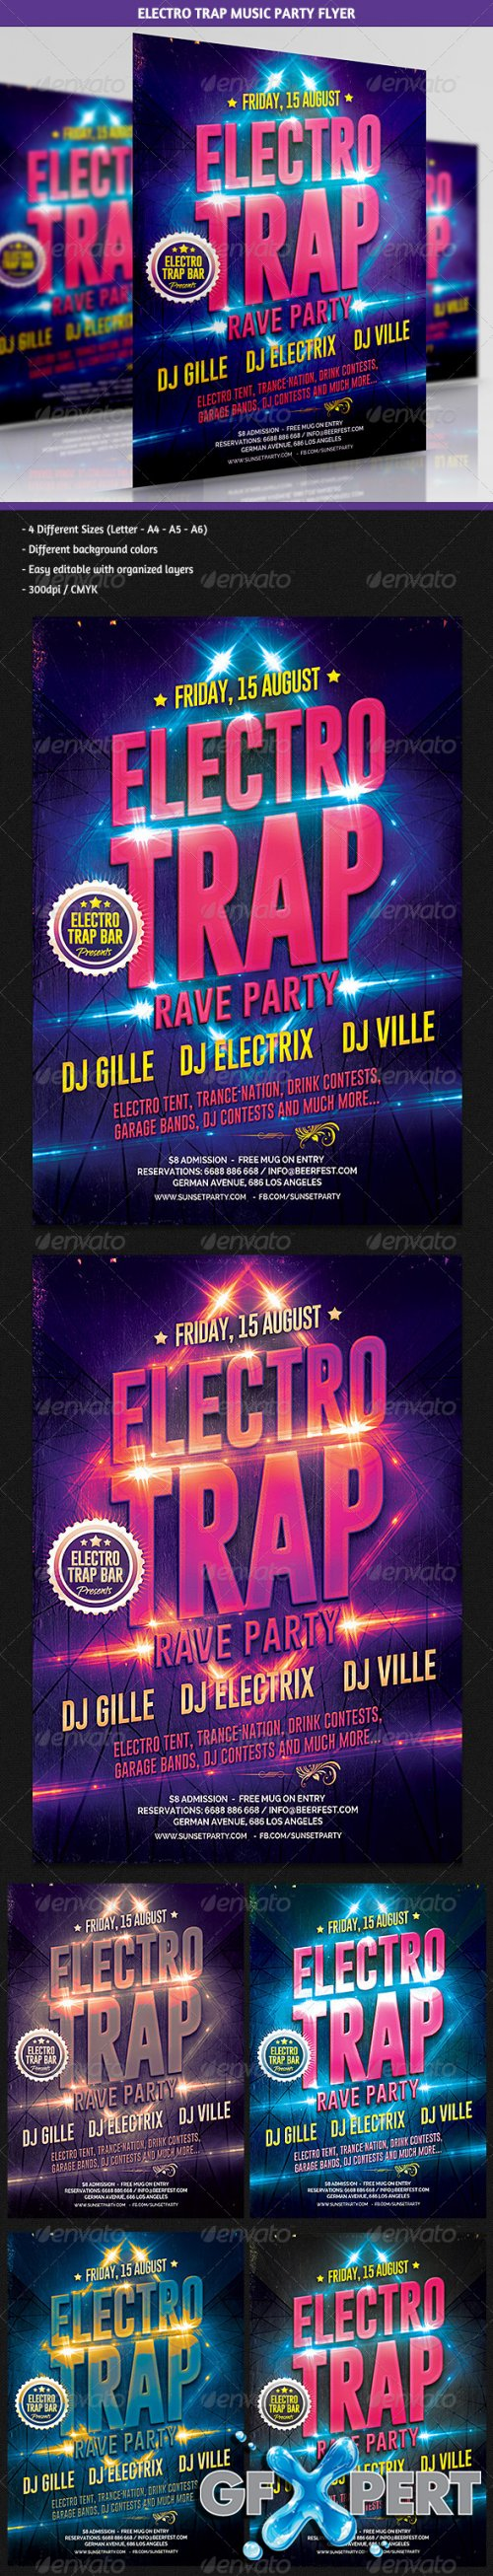 GraphicRiver - Electro Trap Music Party Flyer